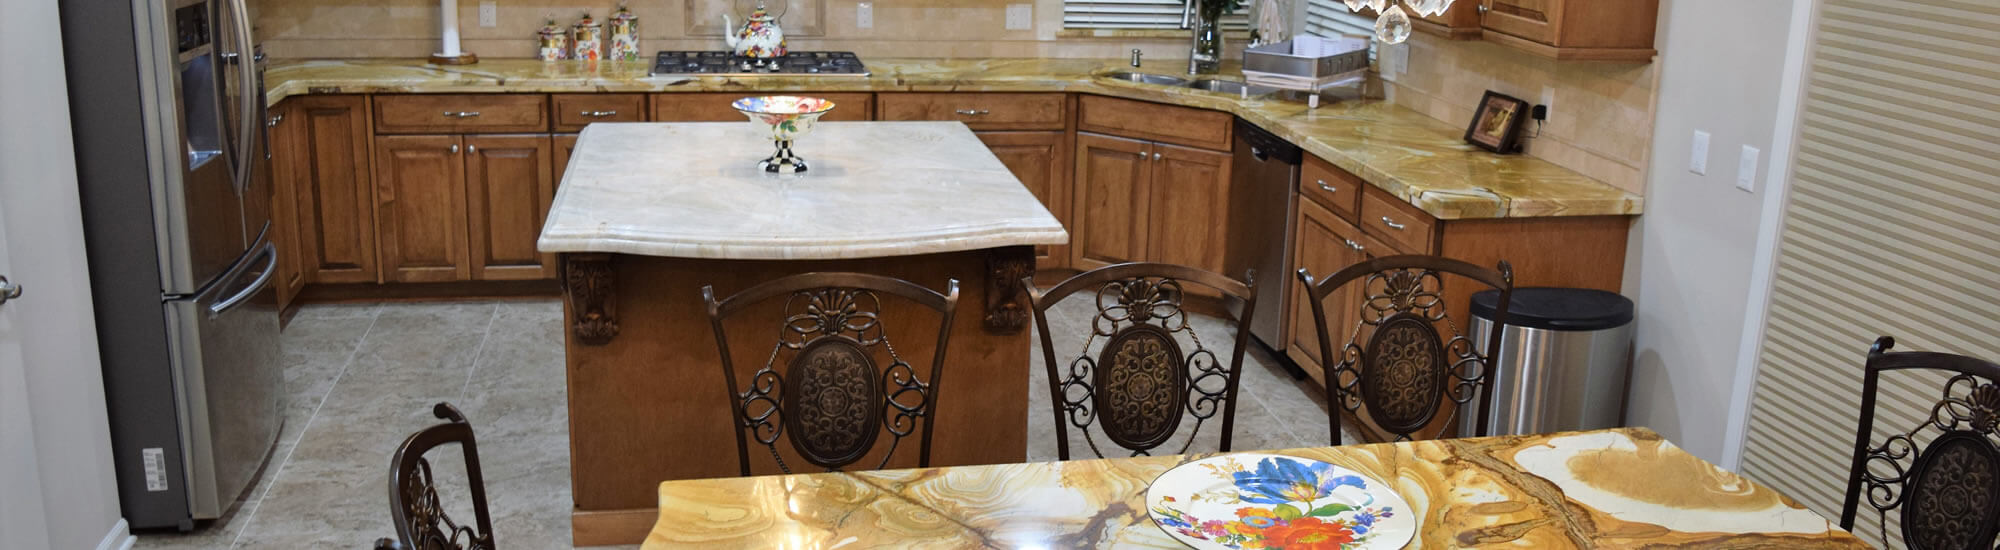 Marble Kitchen Countertops Troy MI - Banner 7